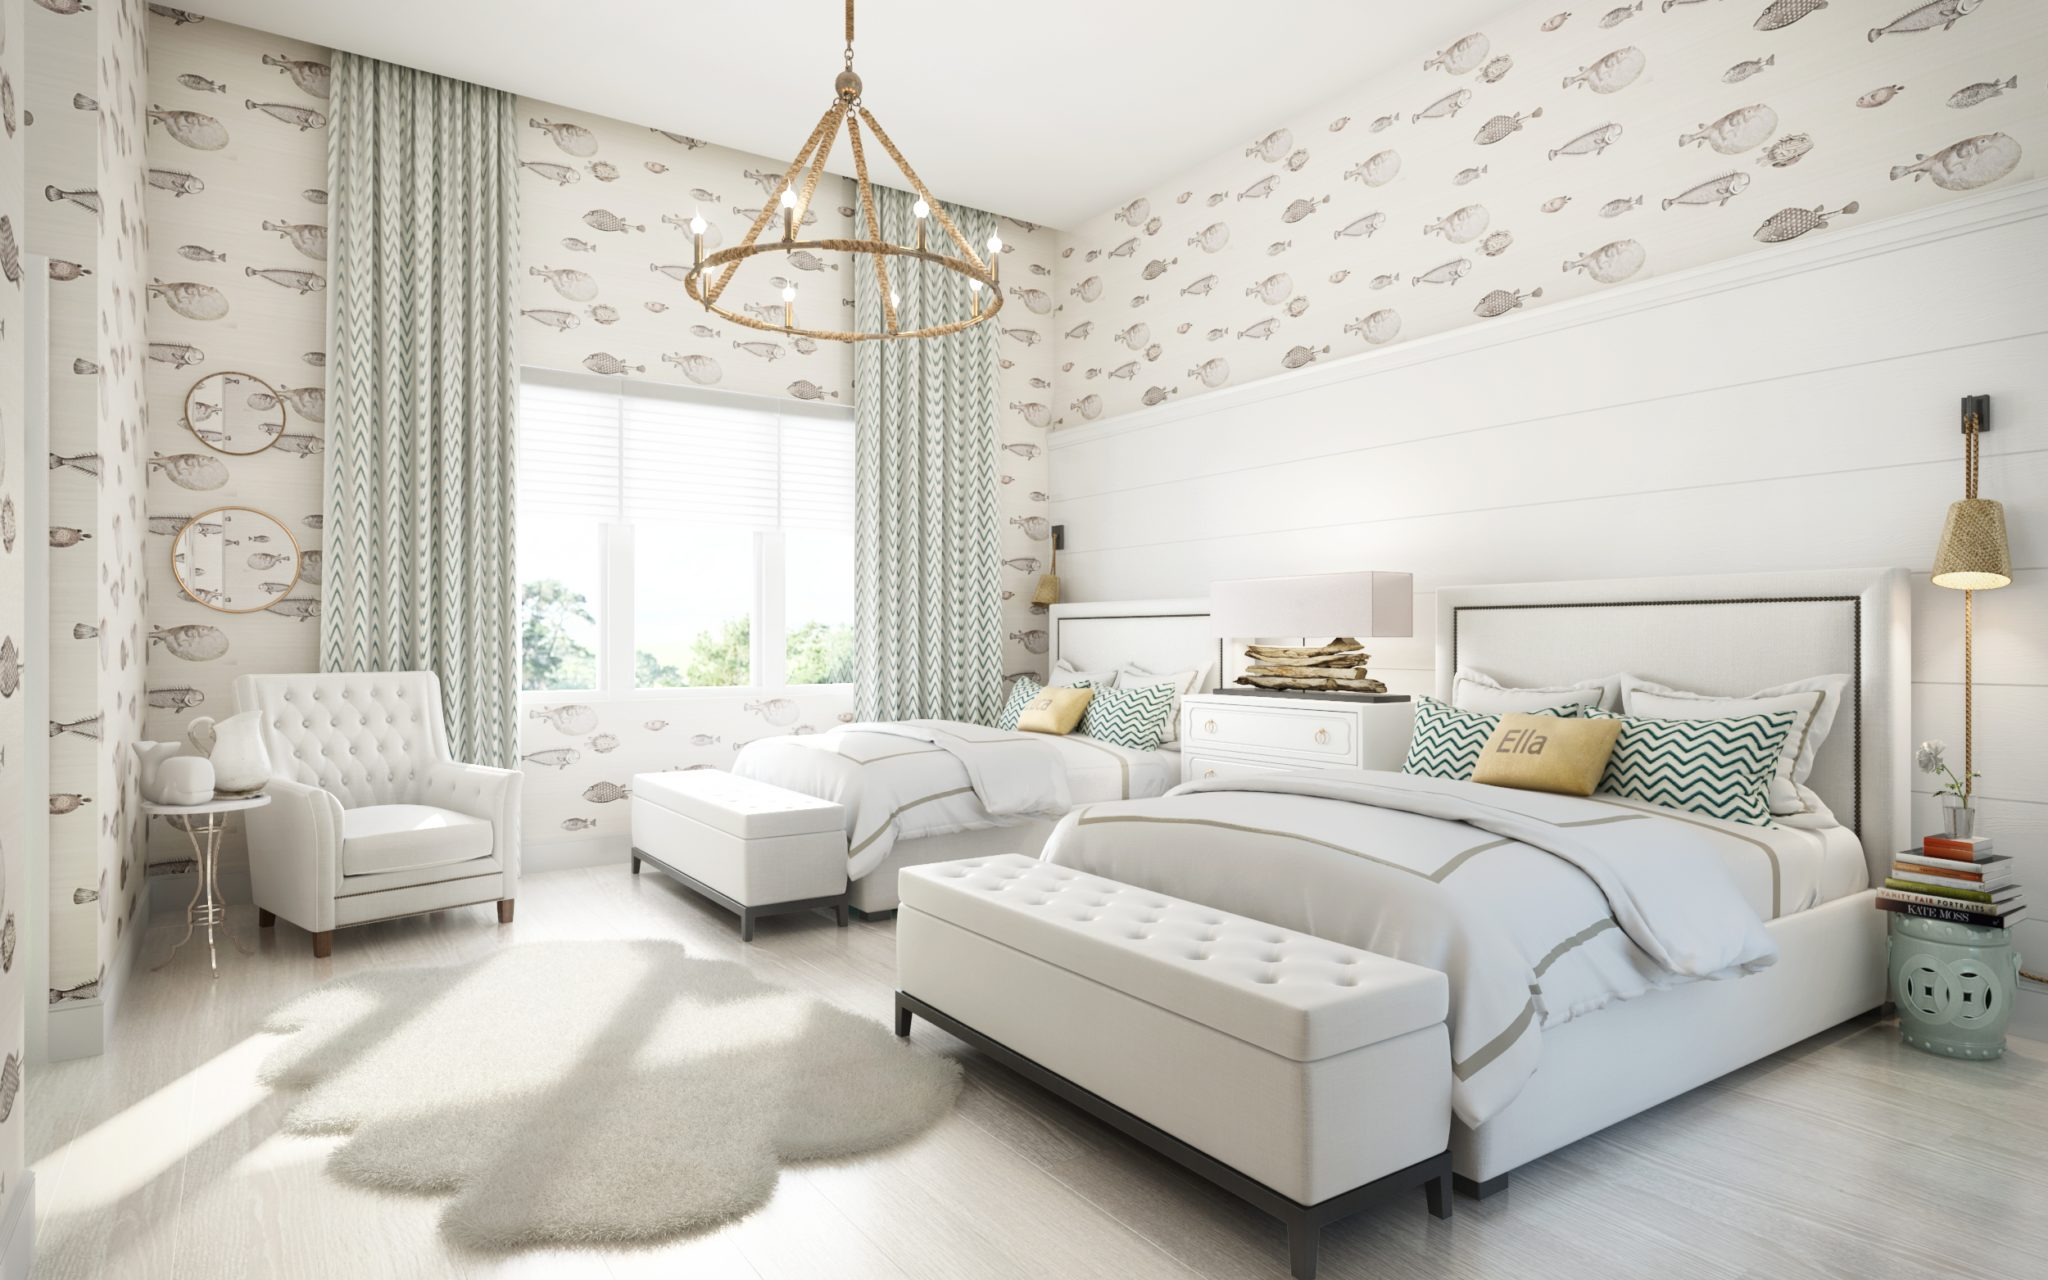 Naples, Florida Residence | Kid's Room by Kathy Kuo Designs